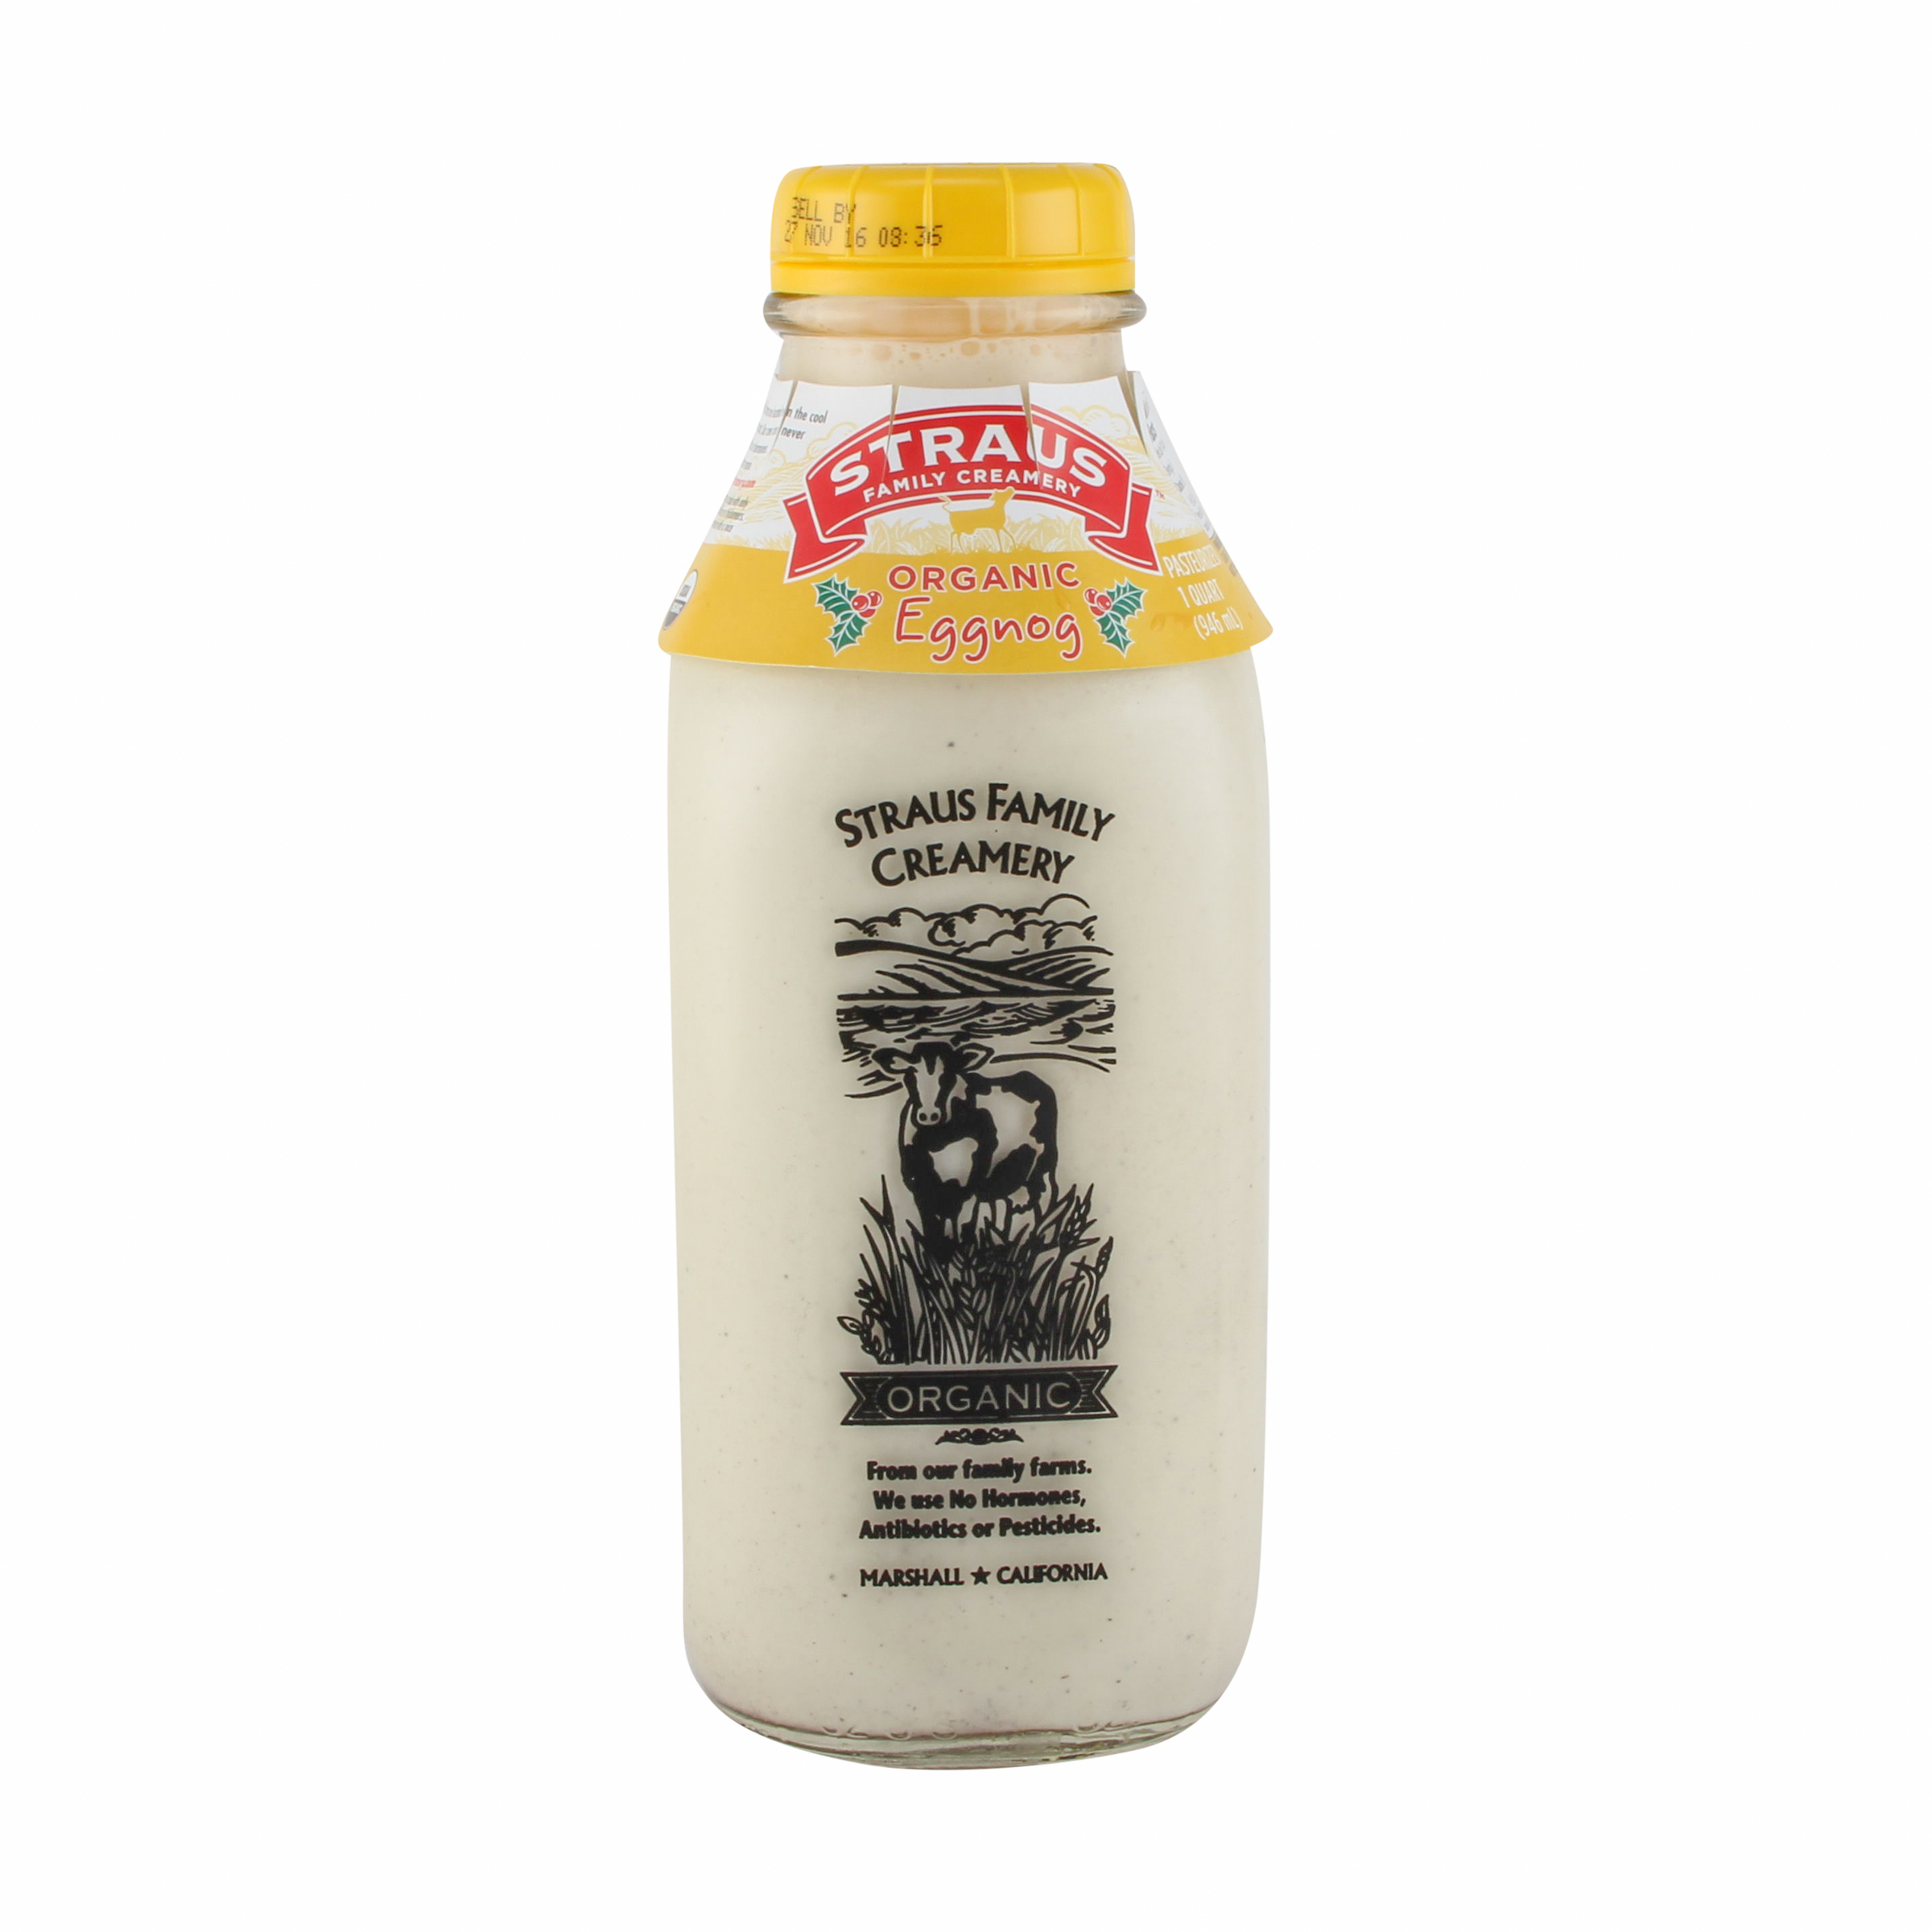 Organic Eggnog, 1 qt, Straus Family Creamery | Whole Foods Market